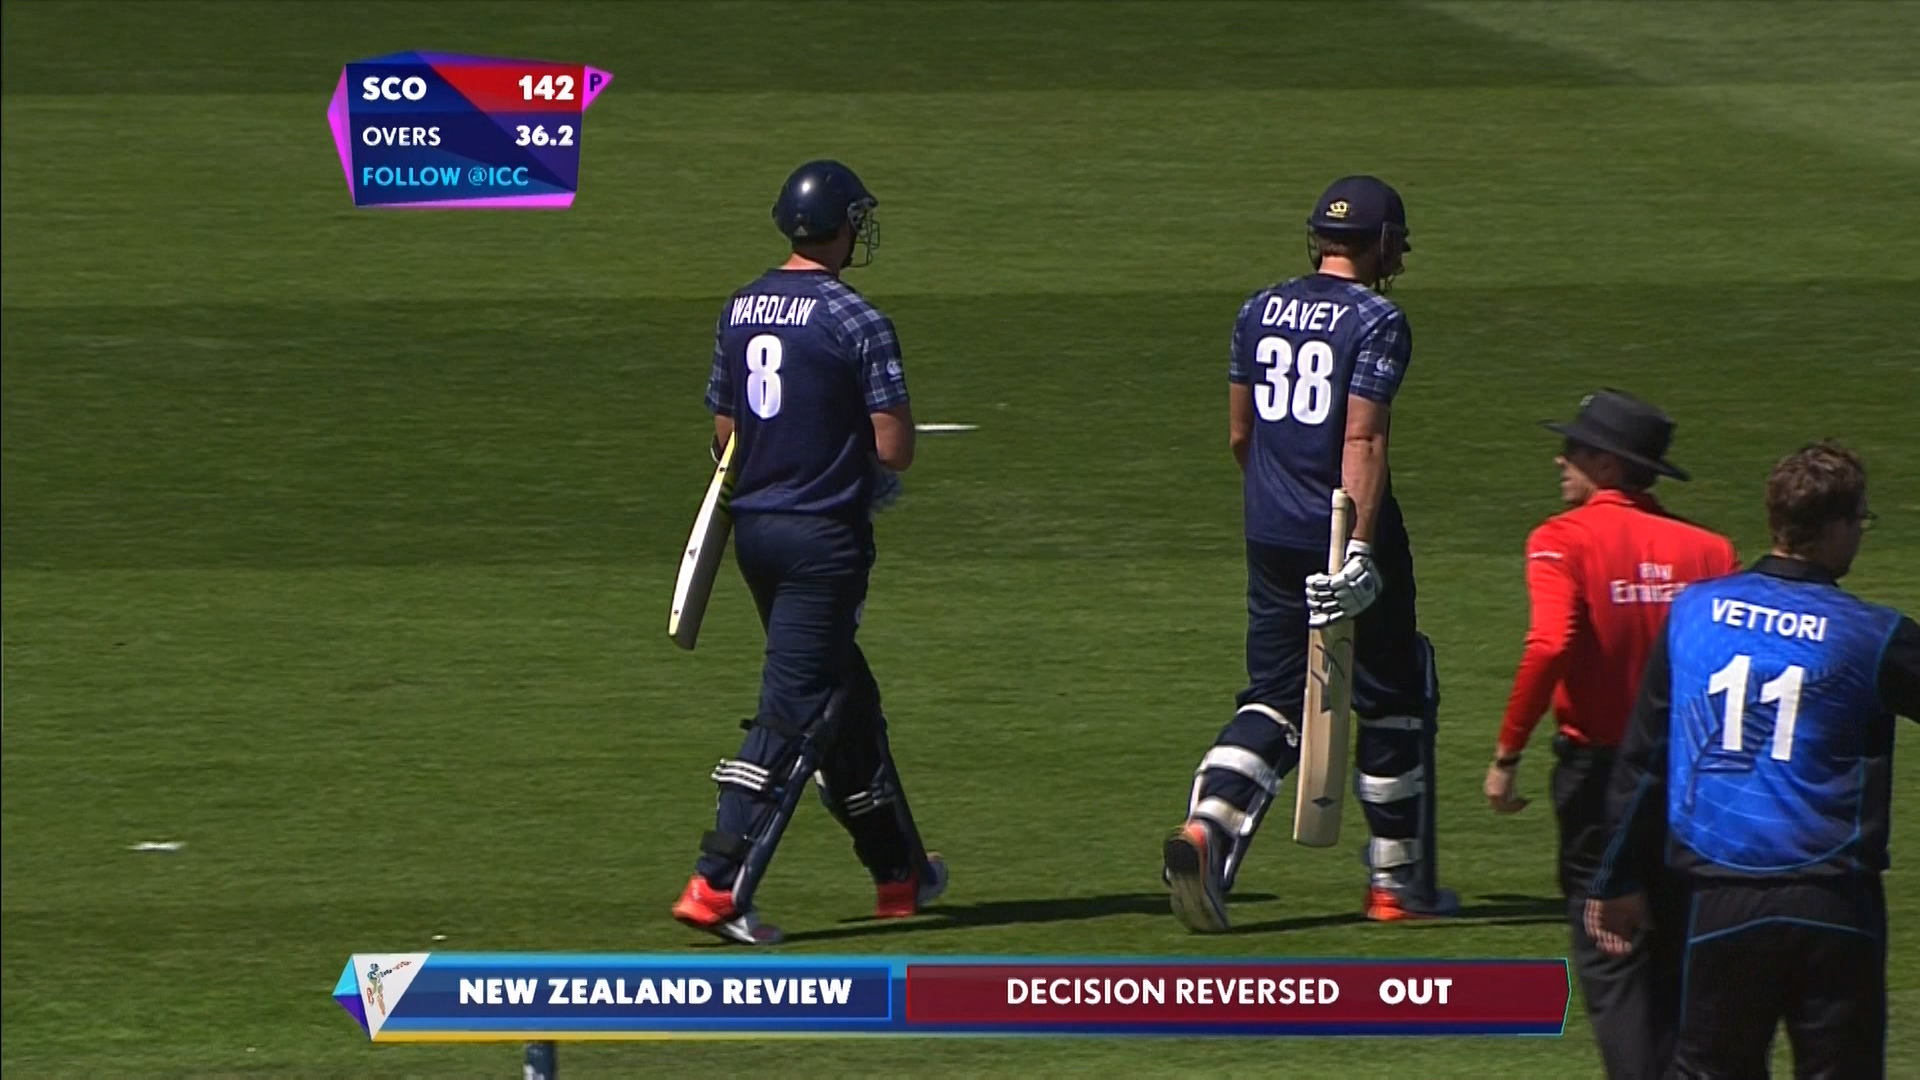 Iain Wardlaw wicket – NZ vs SCO